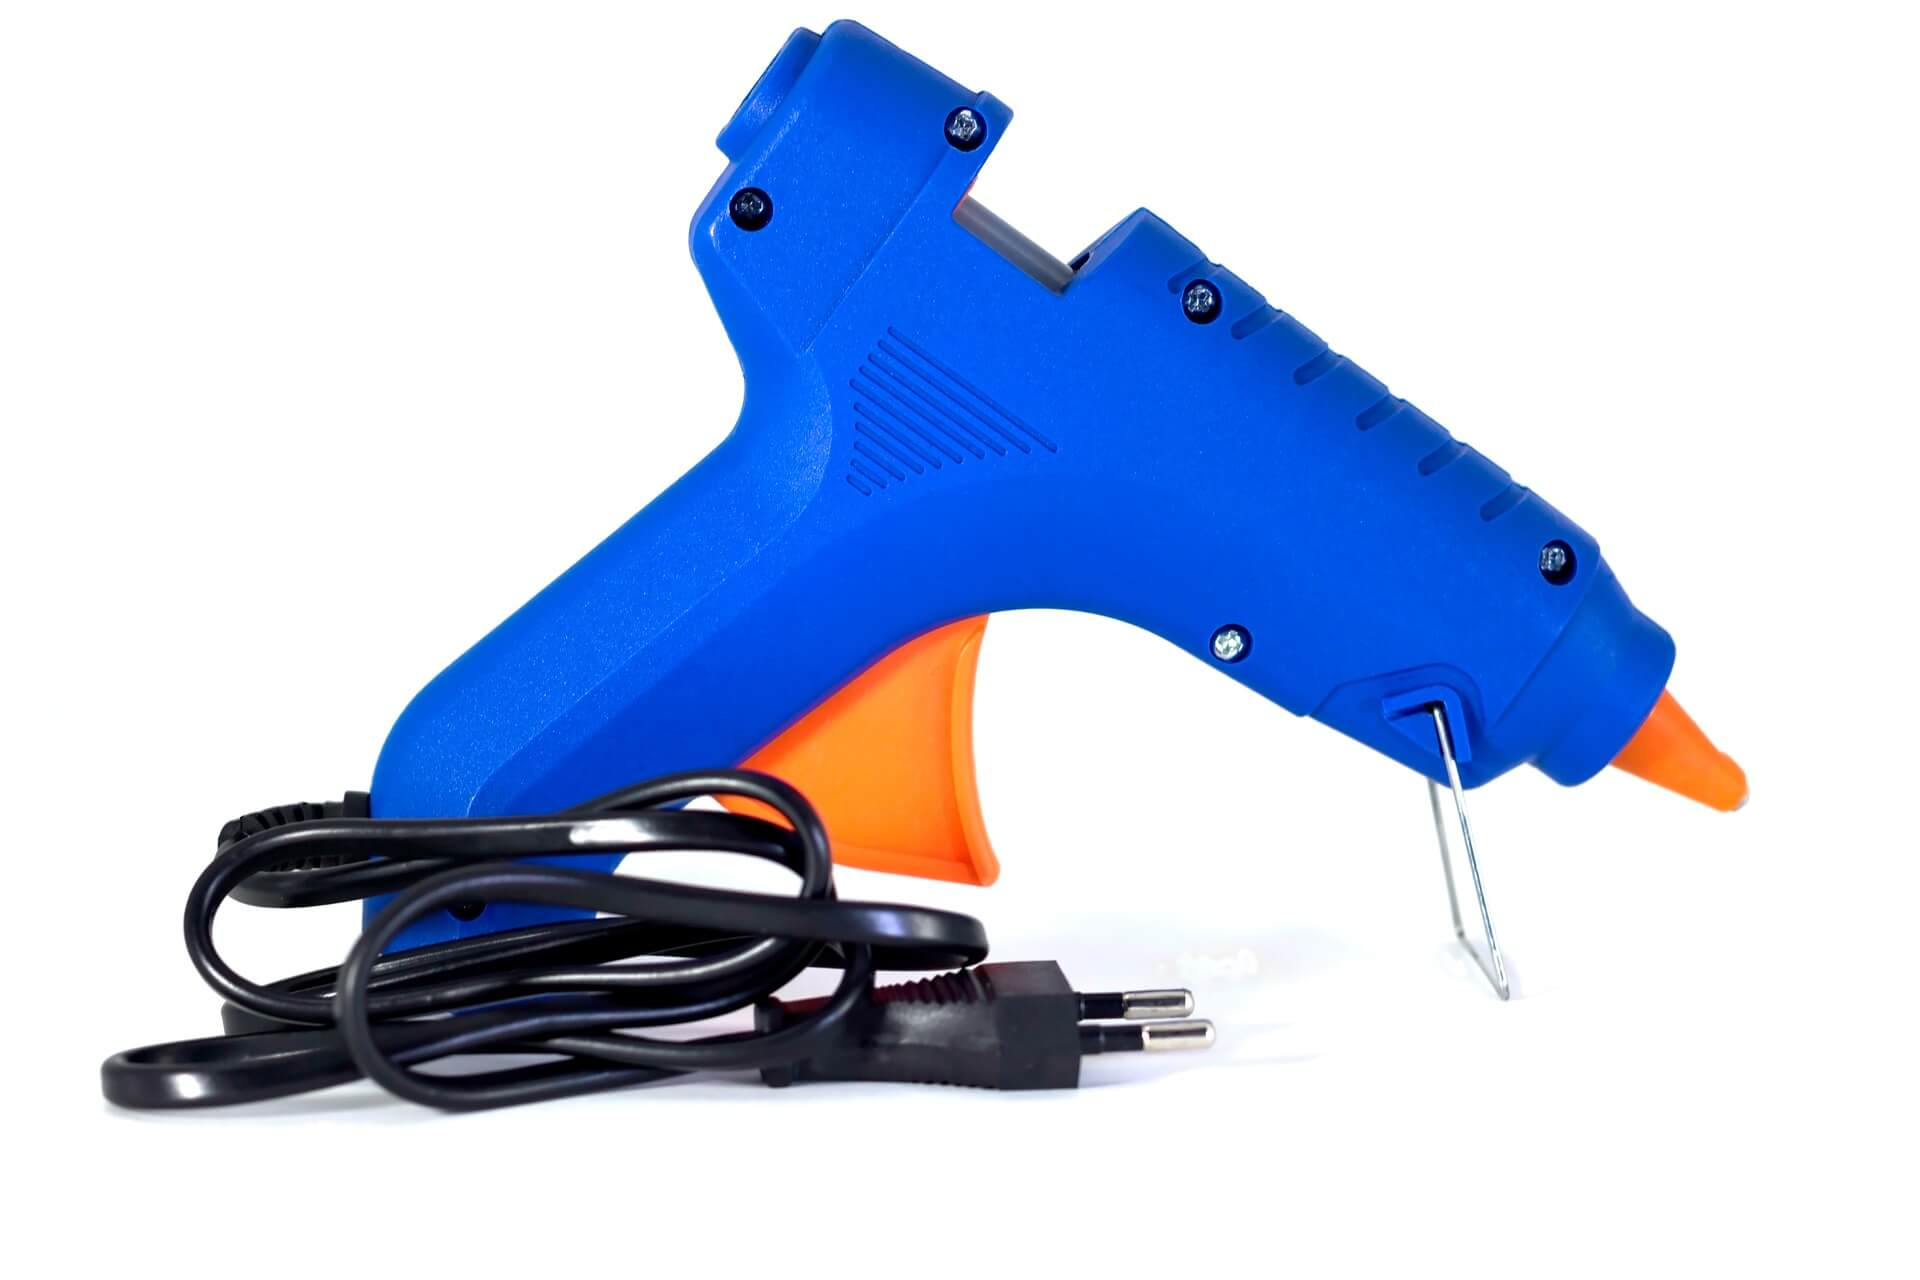 Best Hot Glue Gun For Your Projects